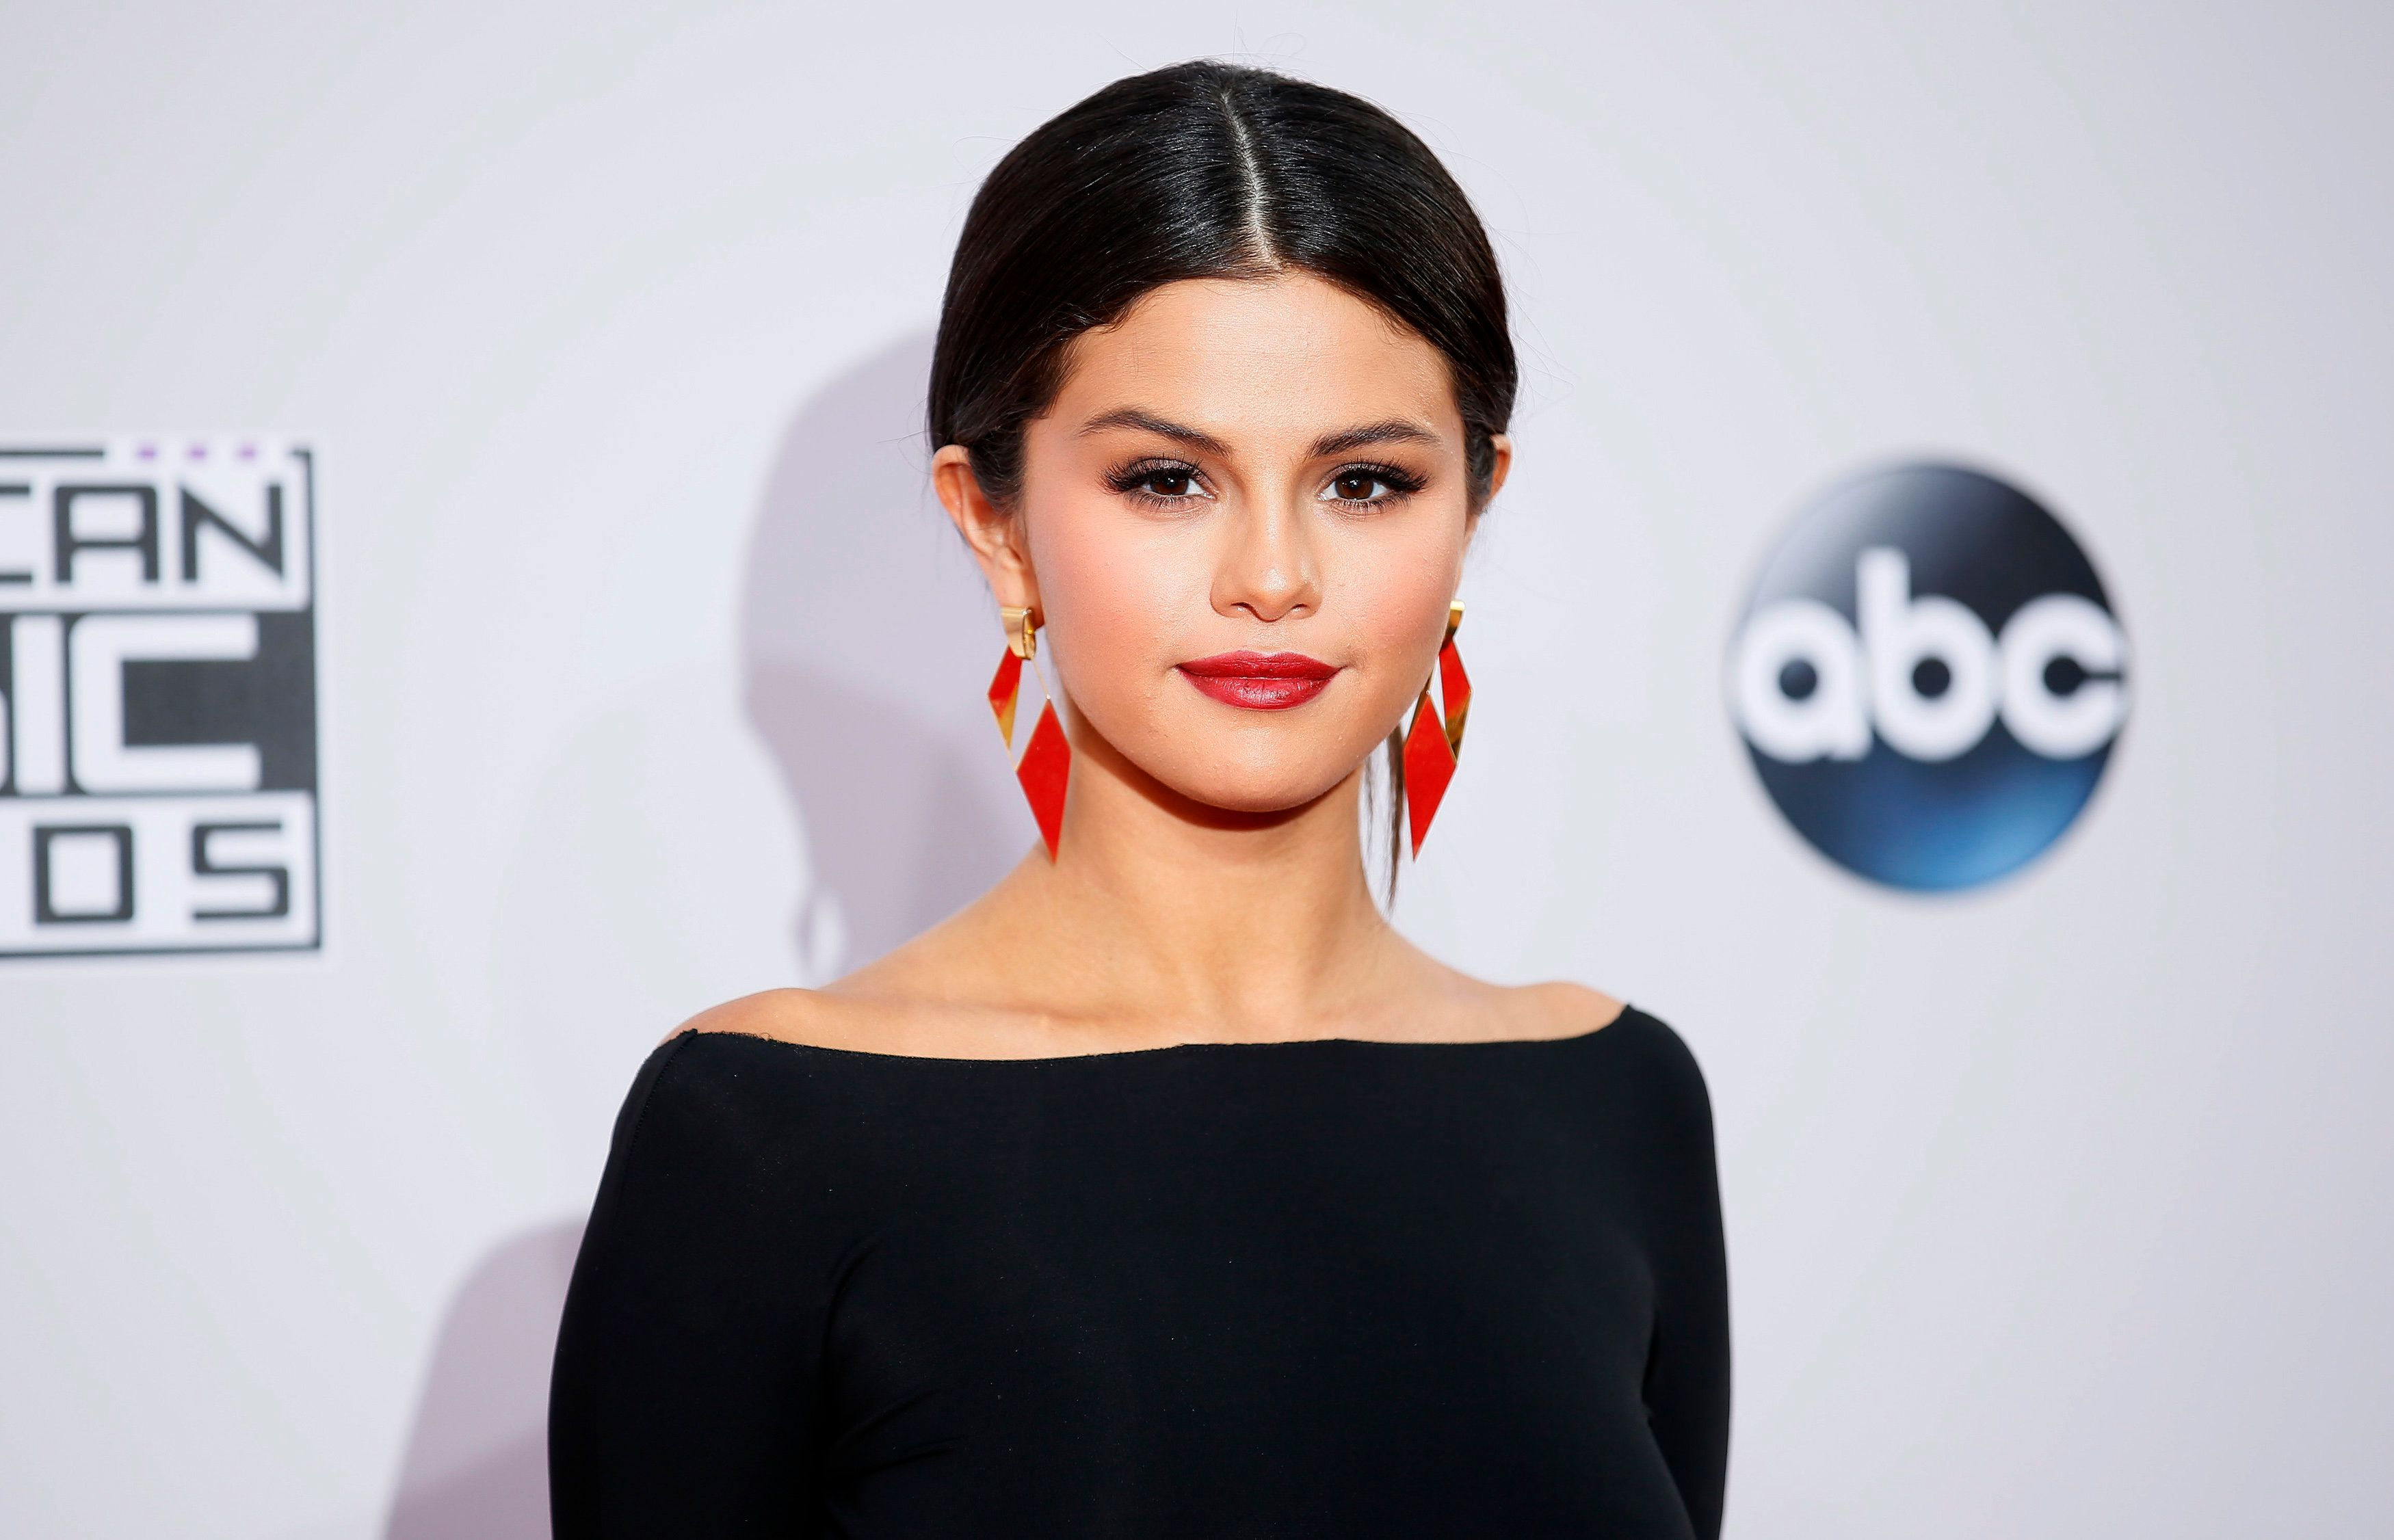 Selena Gomez's decision to take time off to deal with her health is something more people should do.